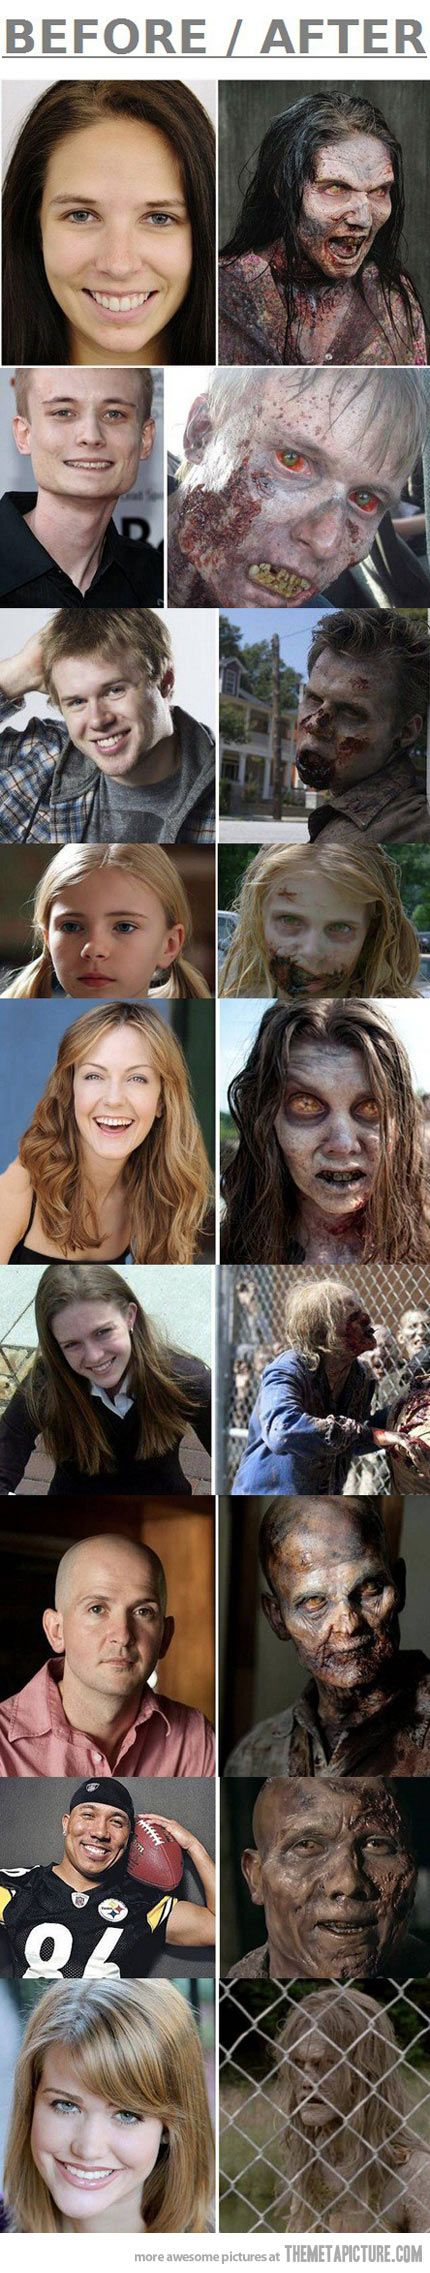 Make-up of The Walking Dead's Zombies... I don't know why, but the little girl still freaks me out the most of all the zombies ever on the show.